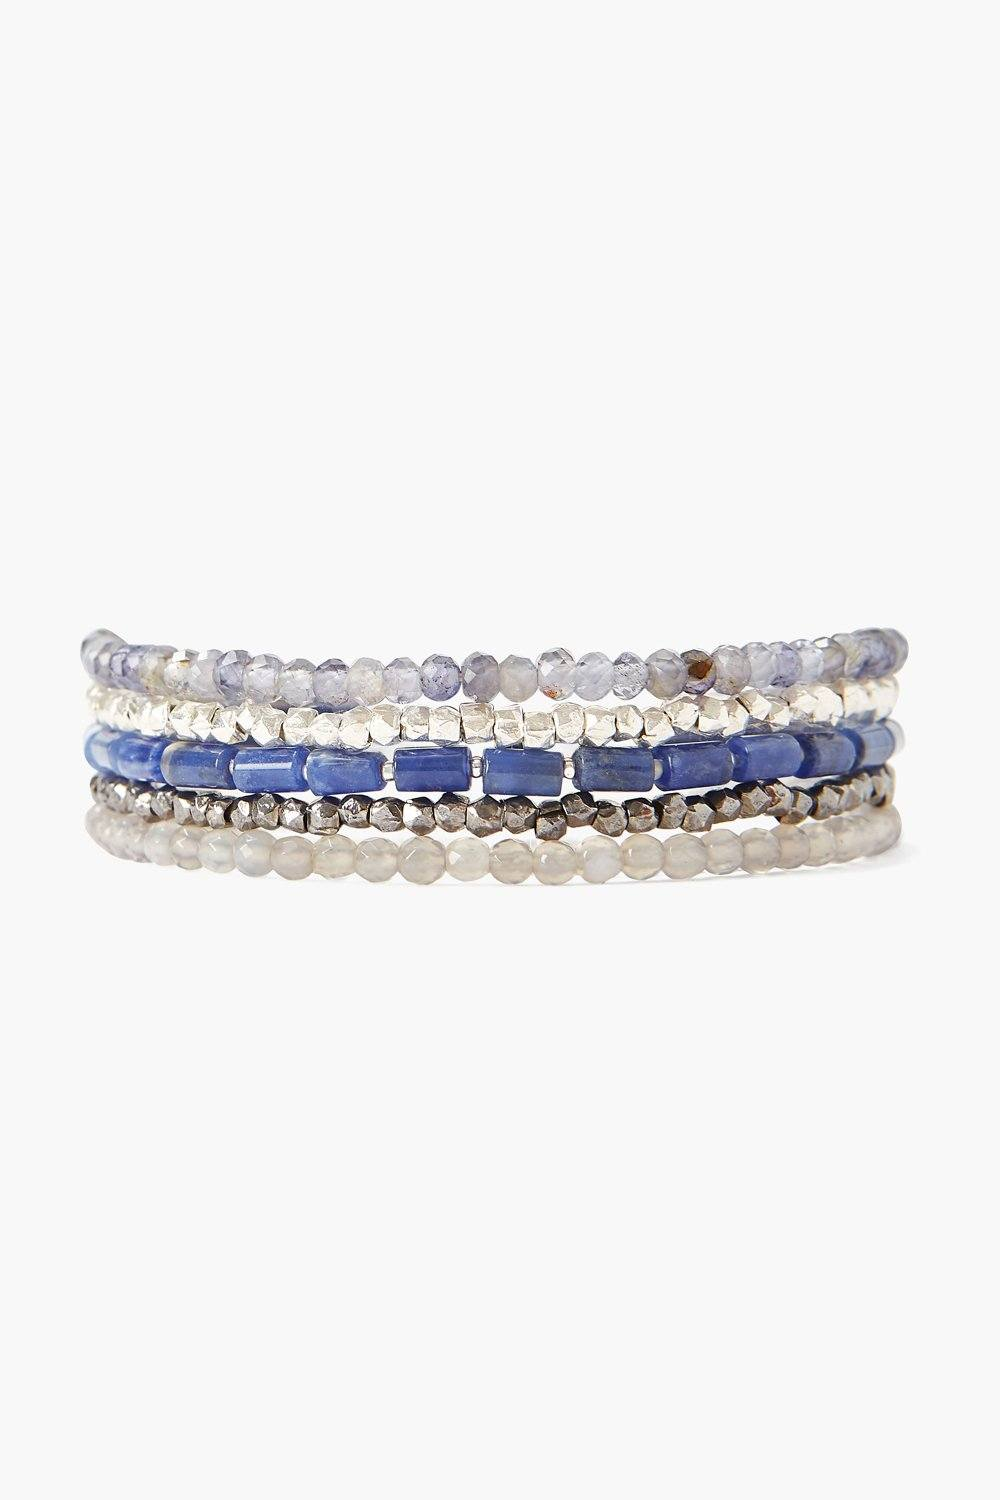 Sodalite and Silver Mix Wrap Bracelet